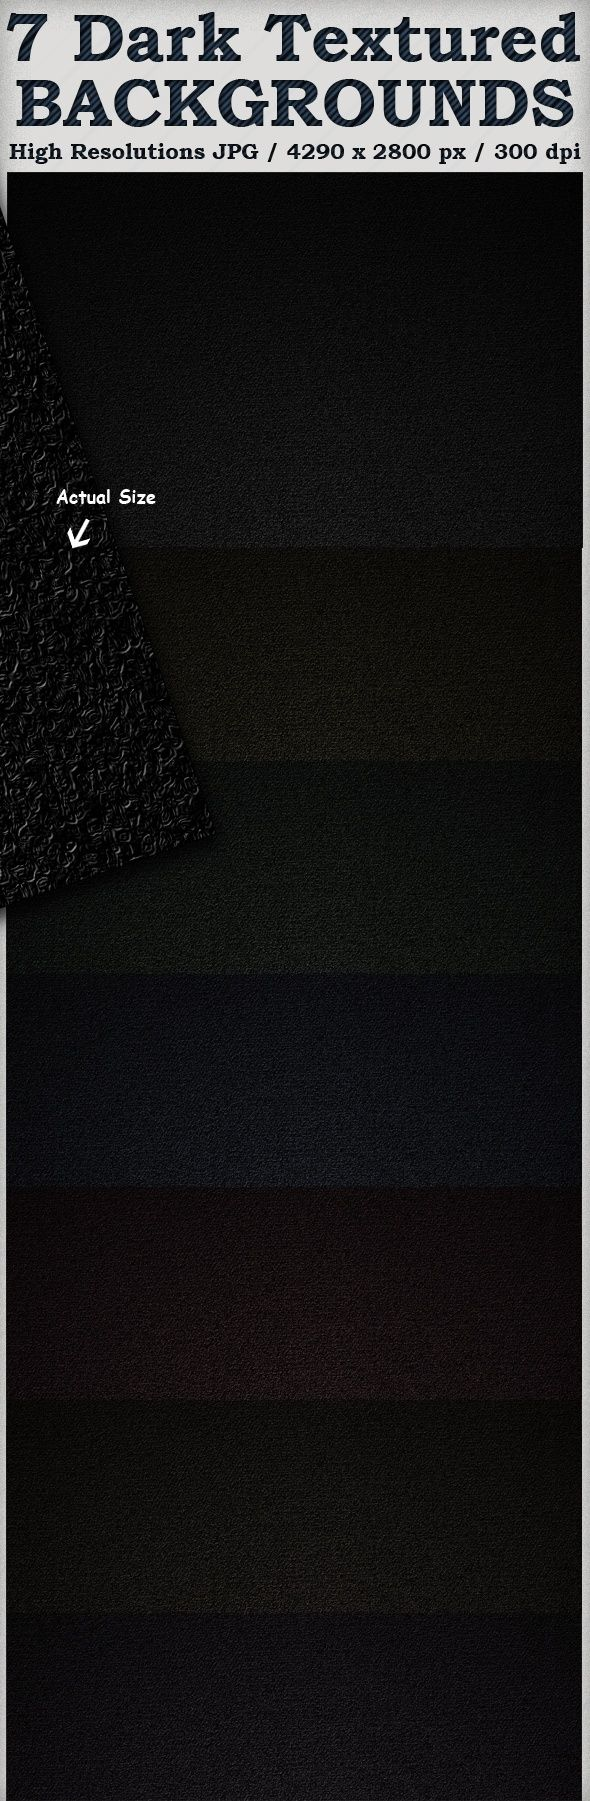 7 Dark Textured Background